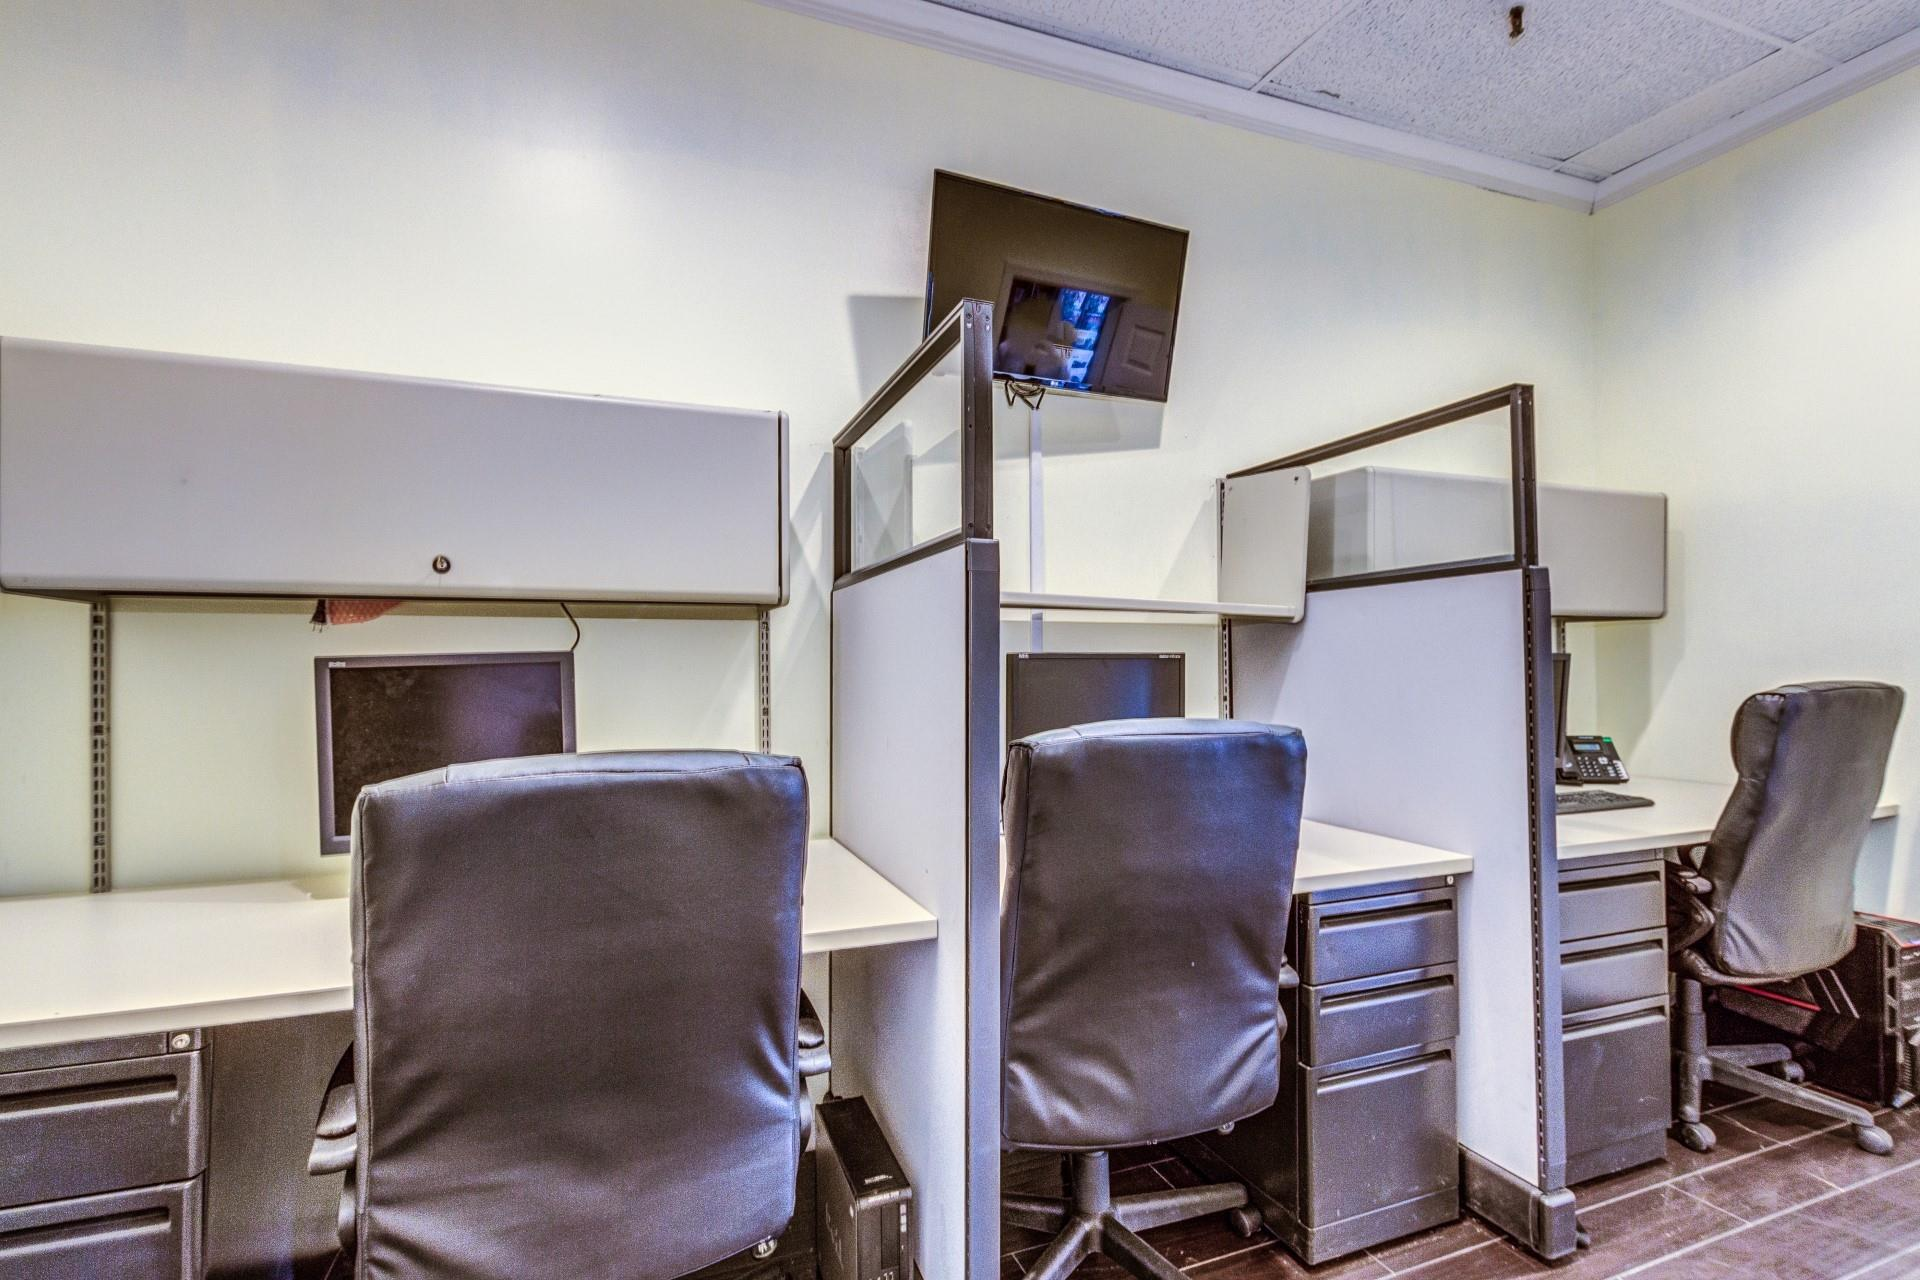 Just My Office - Cubicles